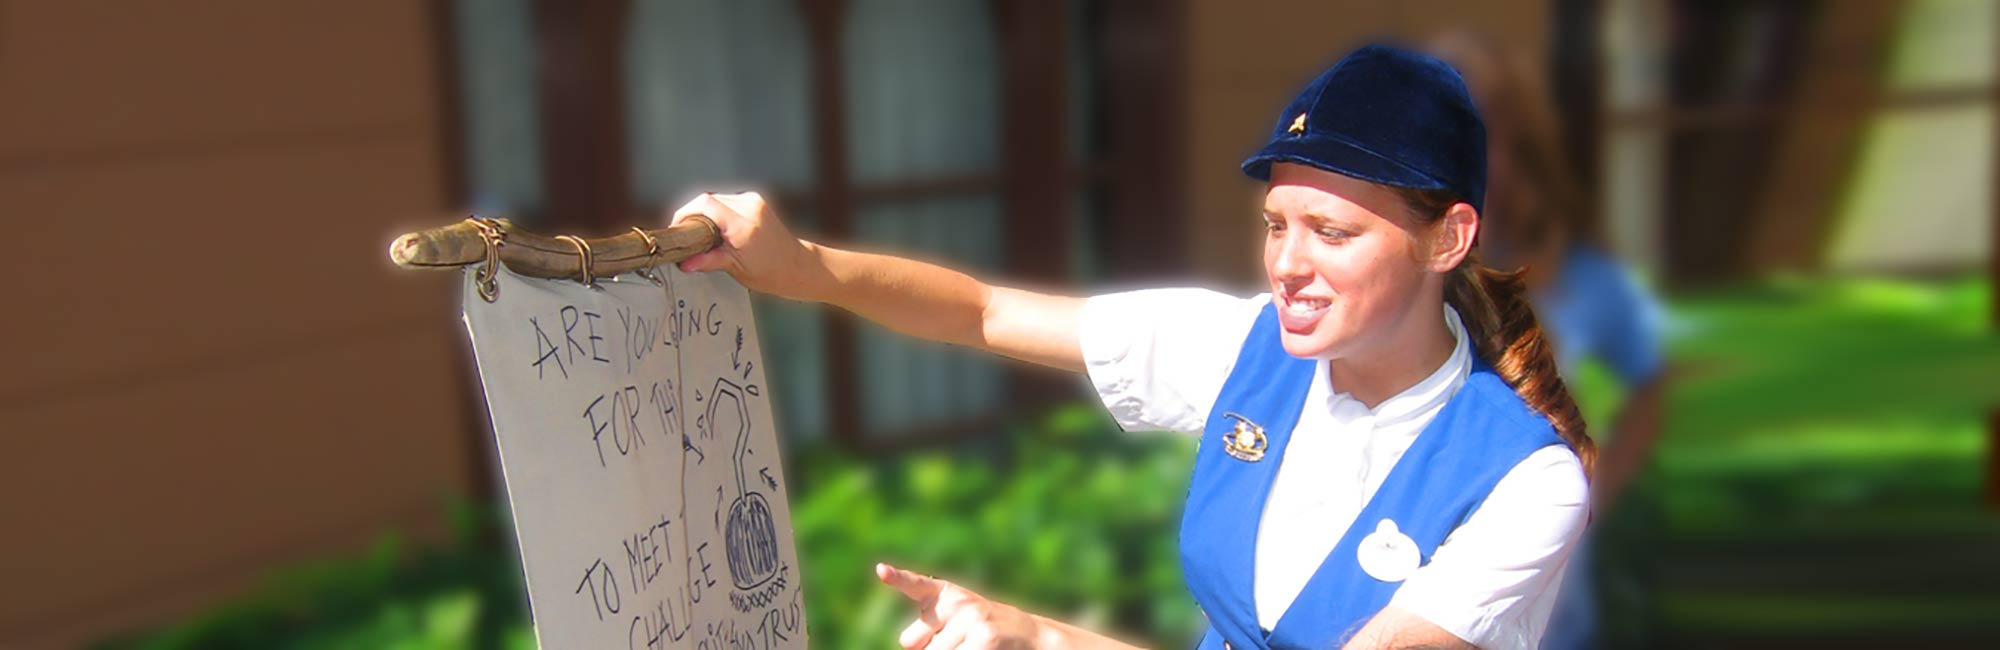 Magic Kingdom Tour Guide